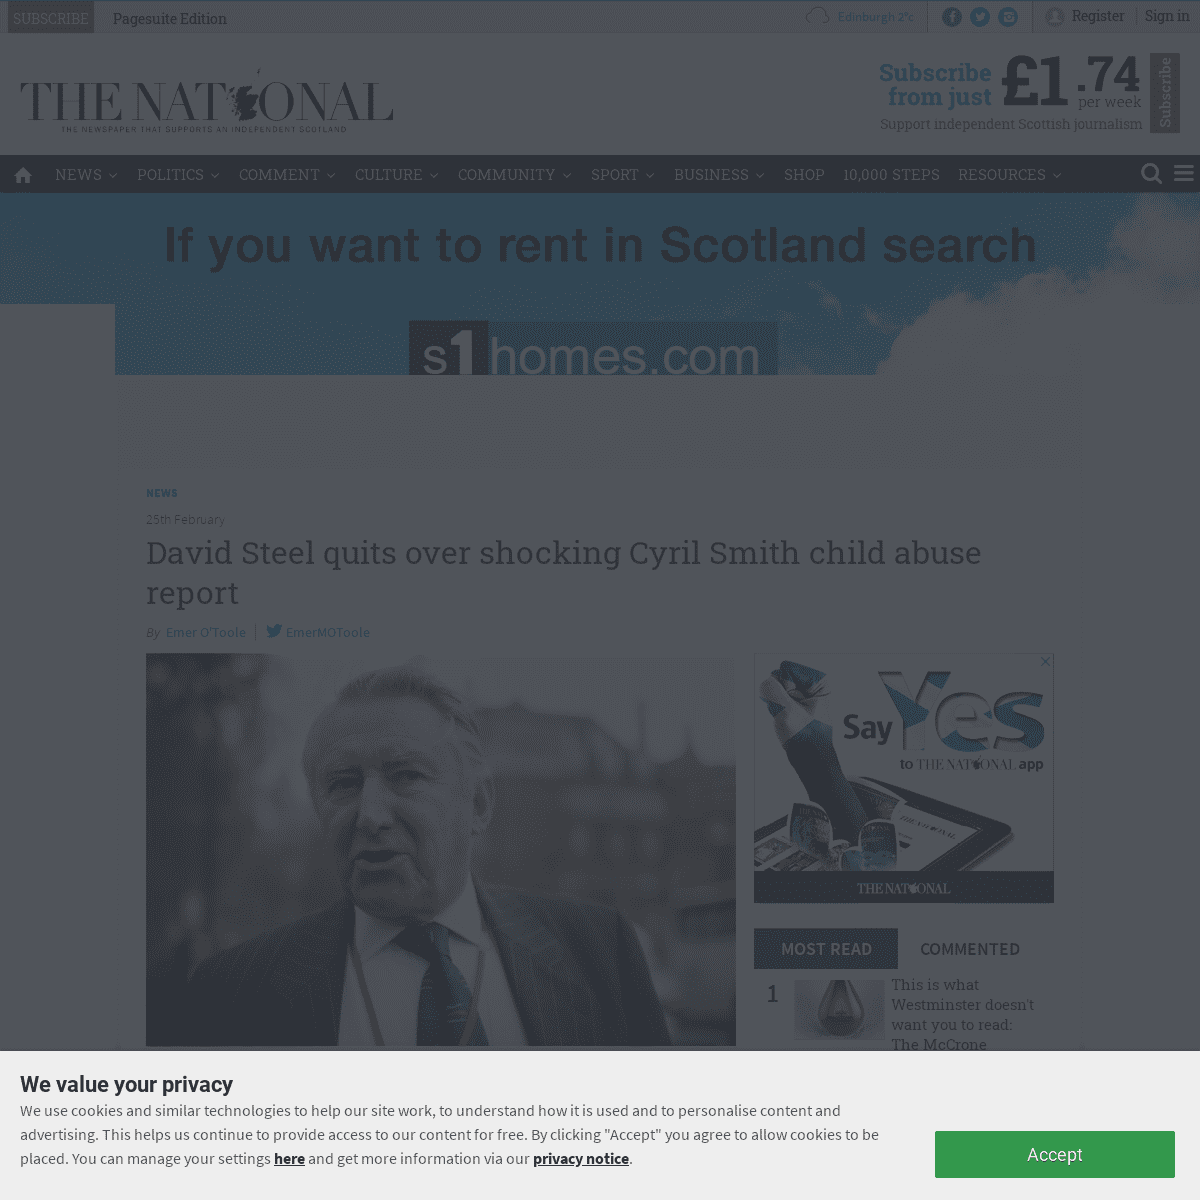 David Steel quits over shocking Cyril Smith child abuse report - The National